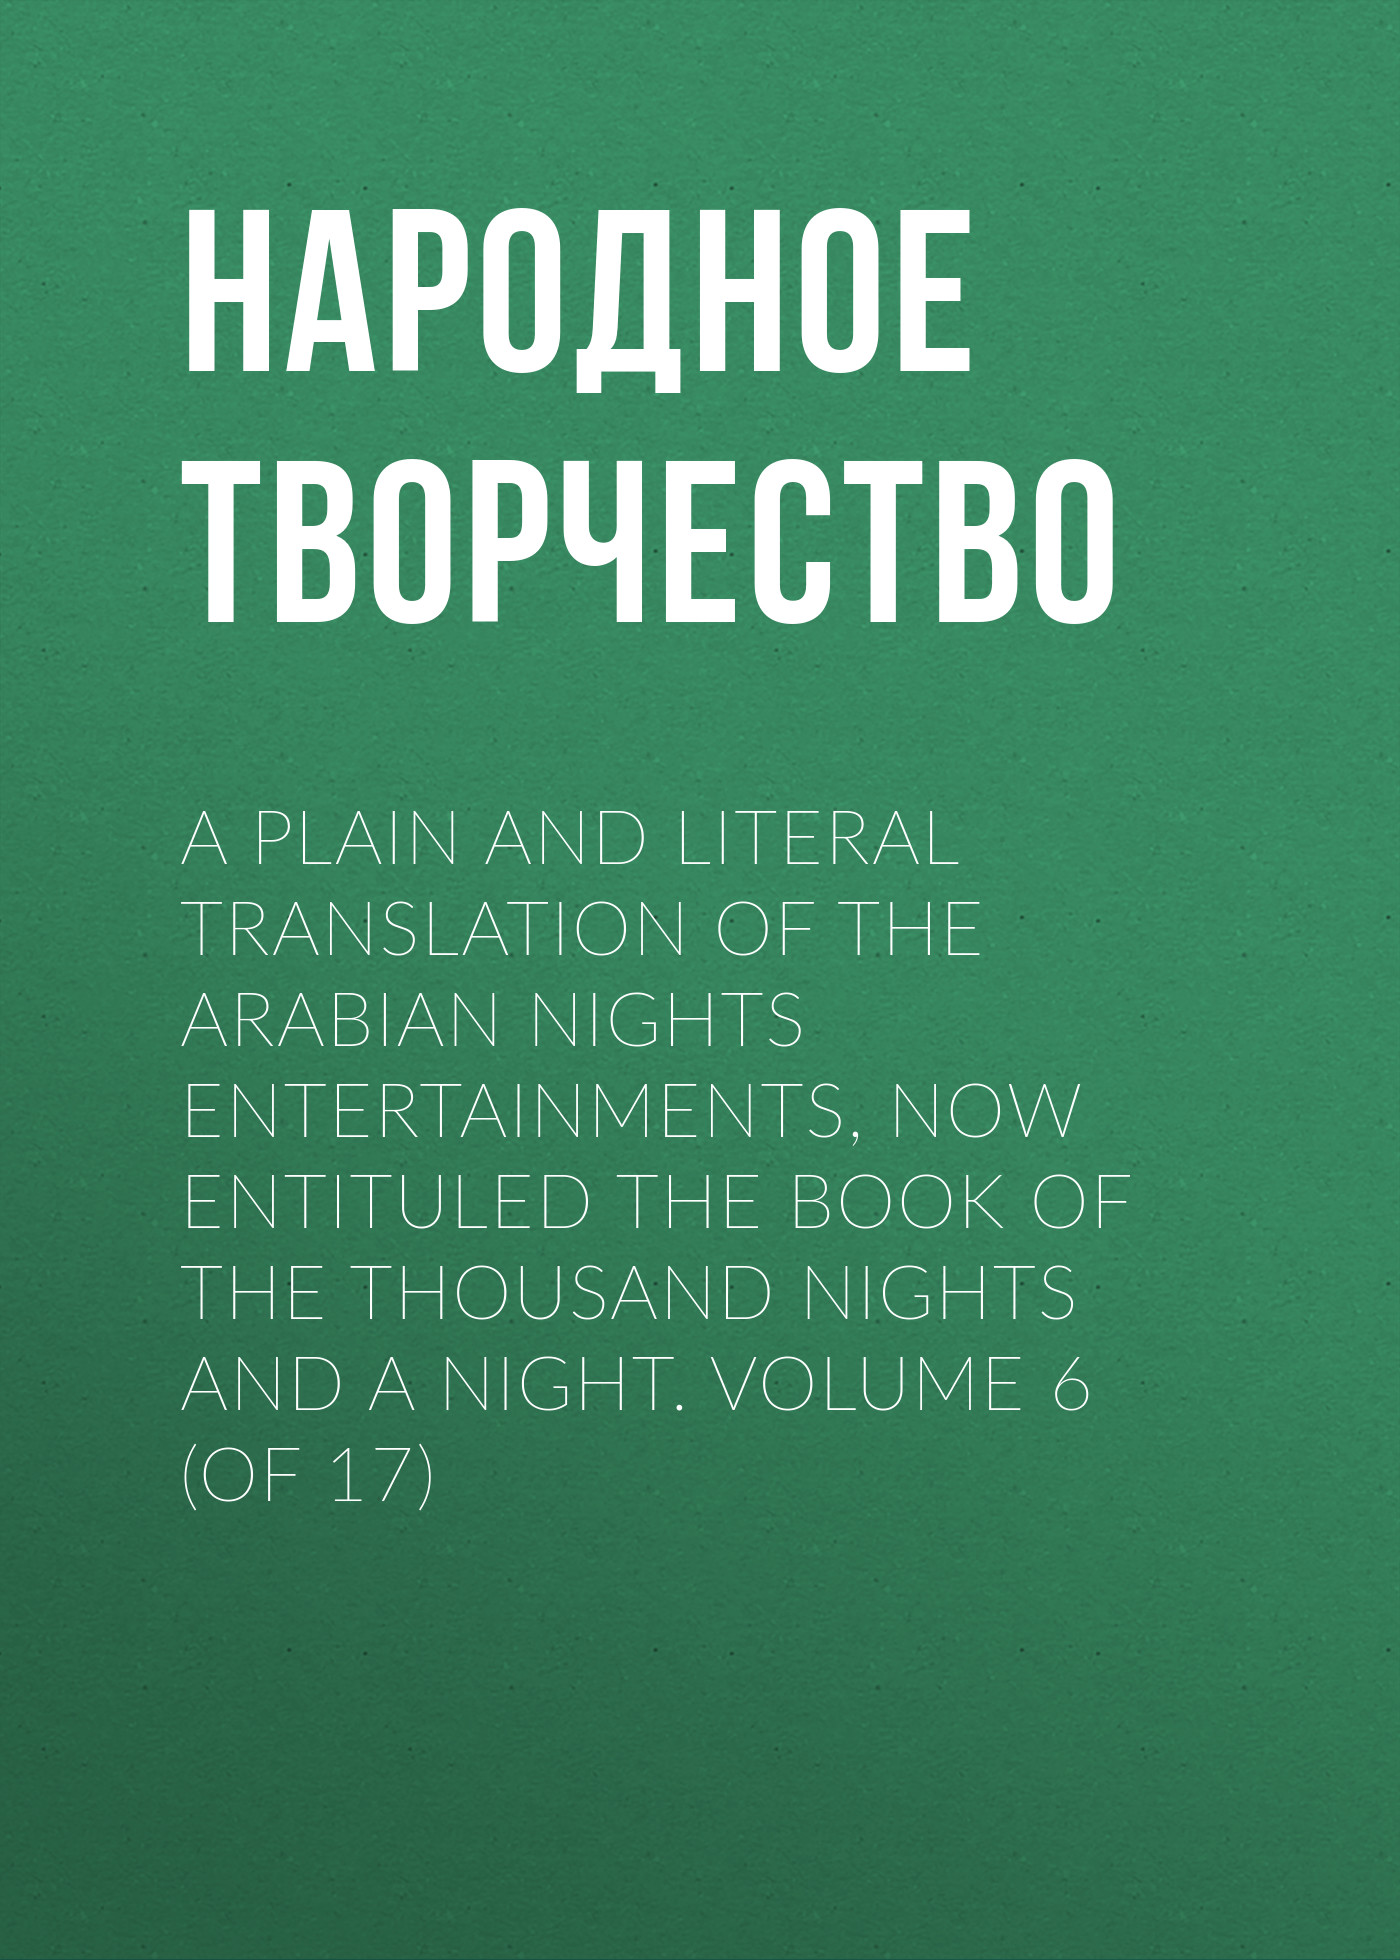 Народное творчество A plain and literal translation of the Arabian nights entertainments, now entituled The Book of the Thousand Nights and a Night. Volume 6 (of 17) rockwell a night of legendary collaborations